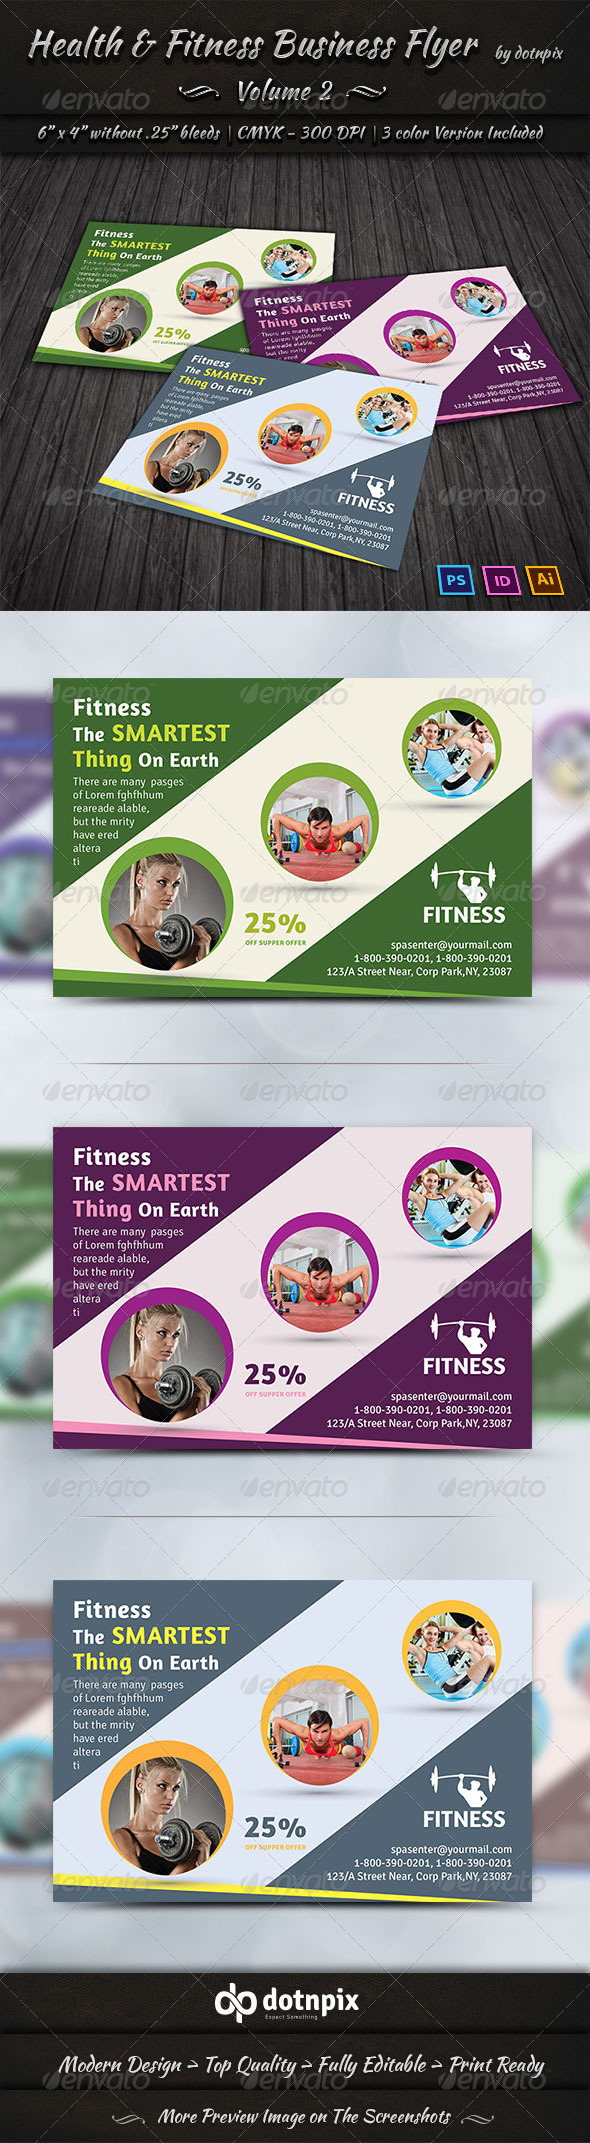 Health & Fitness Center Flyer | Volume 2 - Corporate Flyers